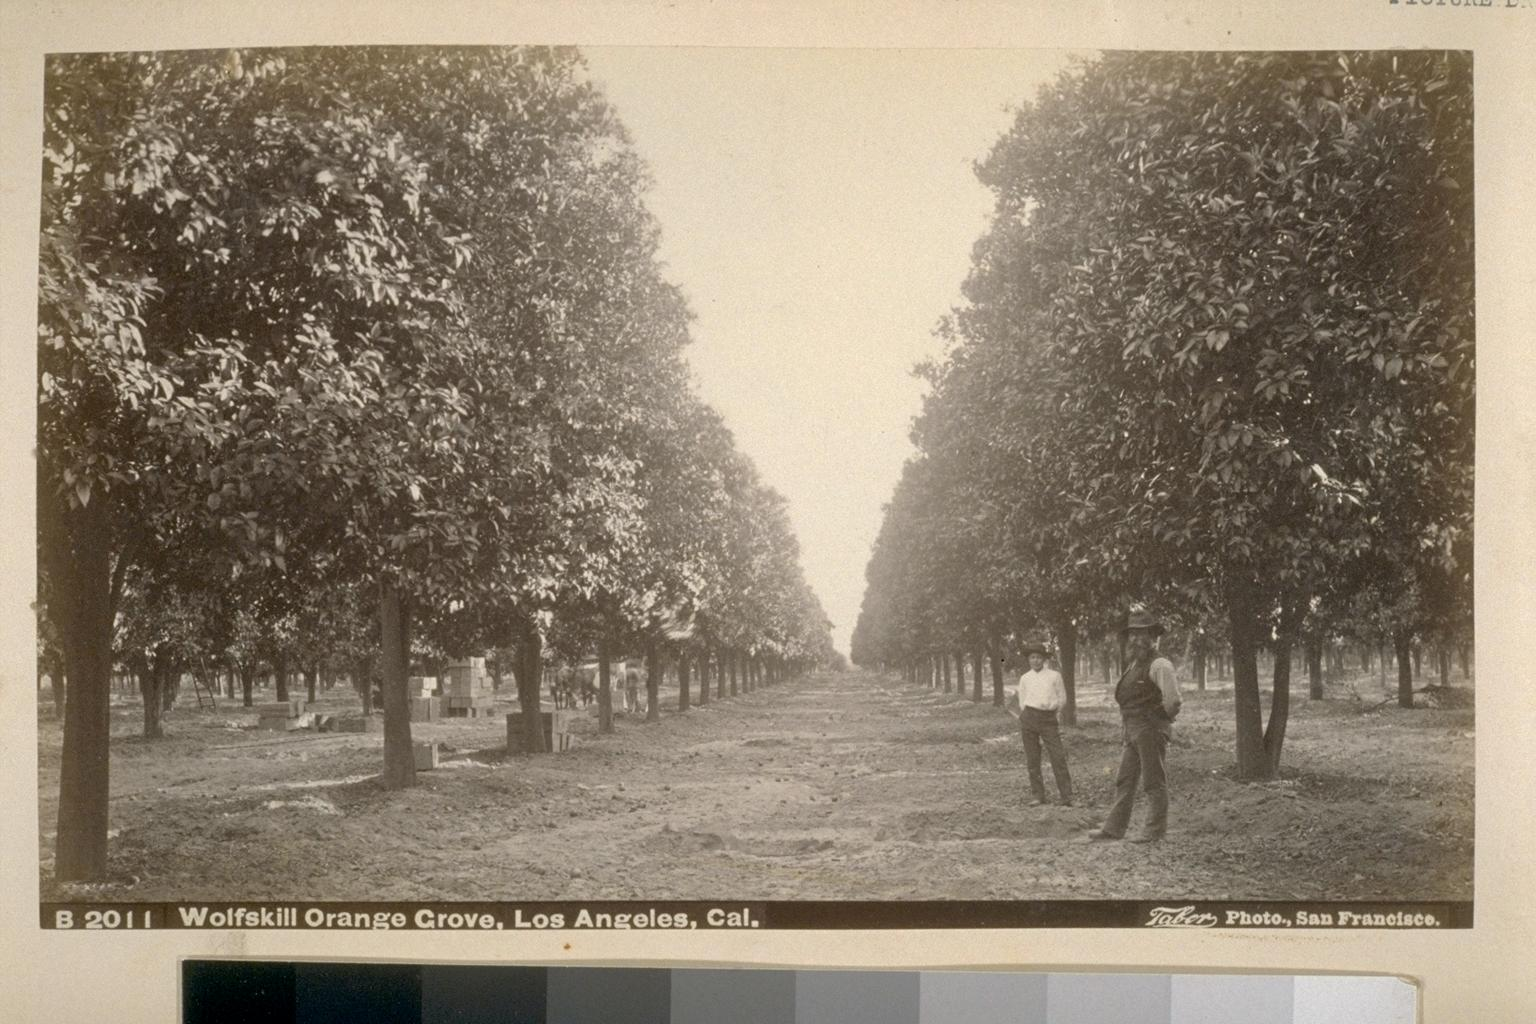 Arts District History - Picture of a 19th century orange grove in the Arts District of Los Angeles